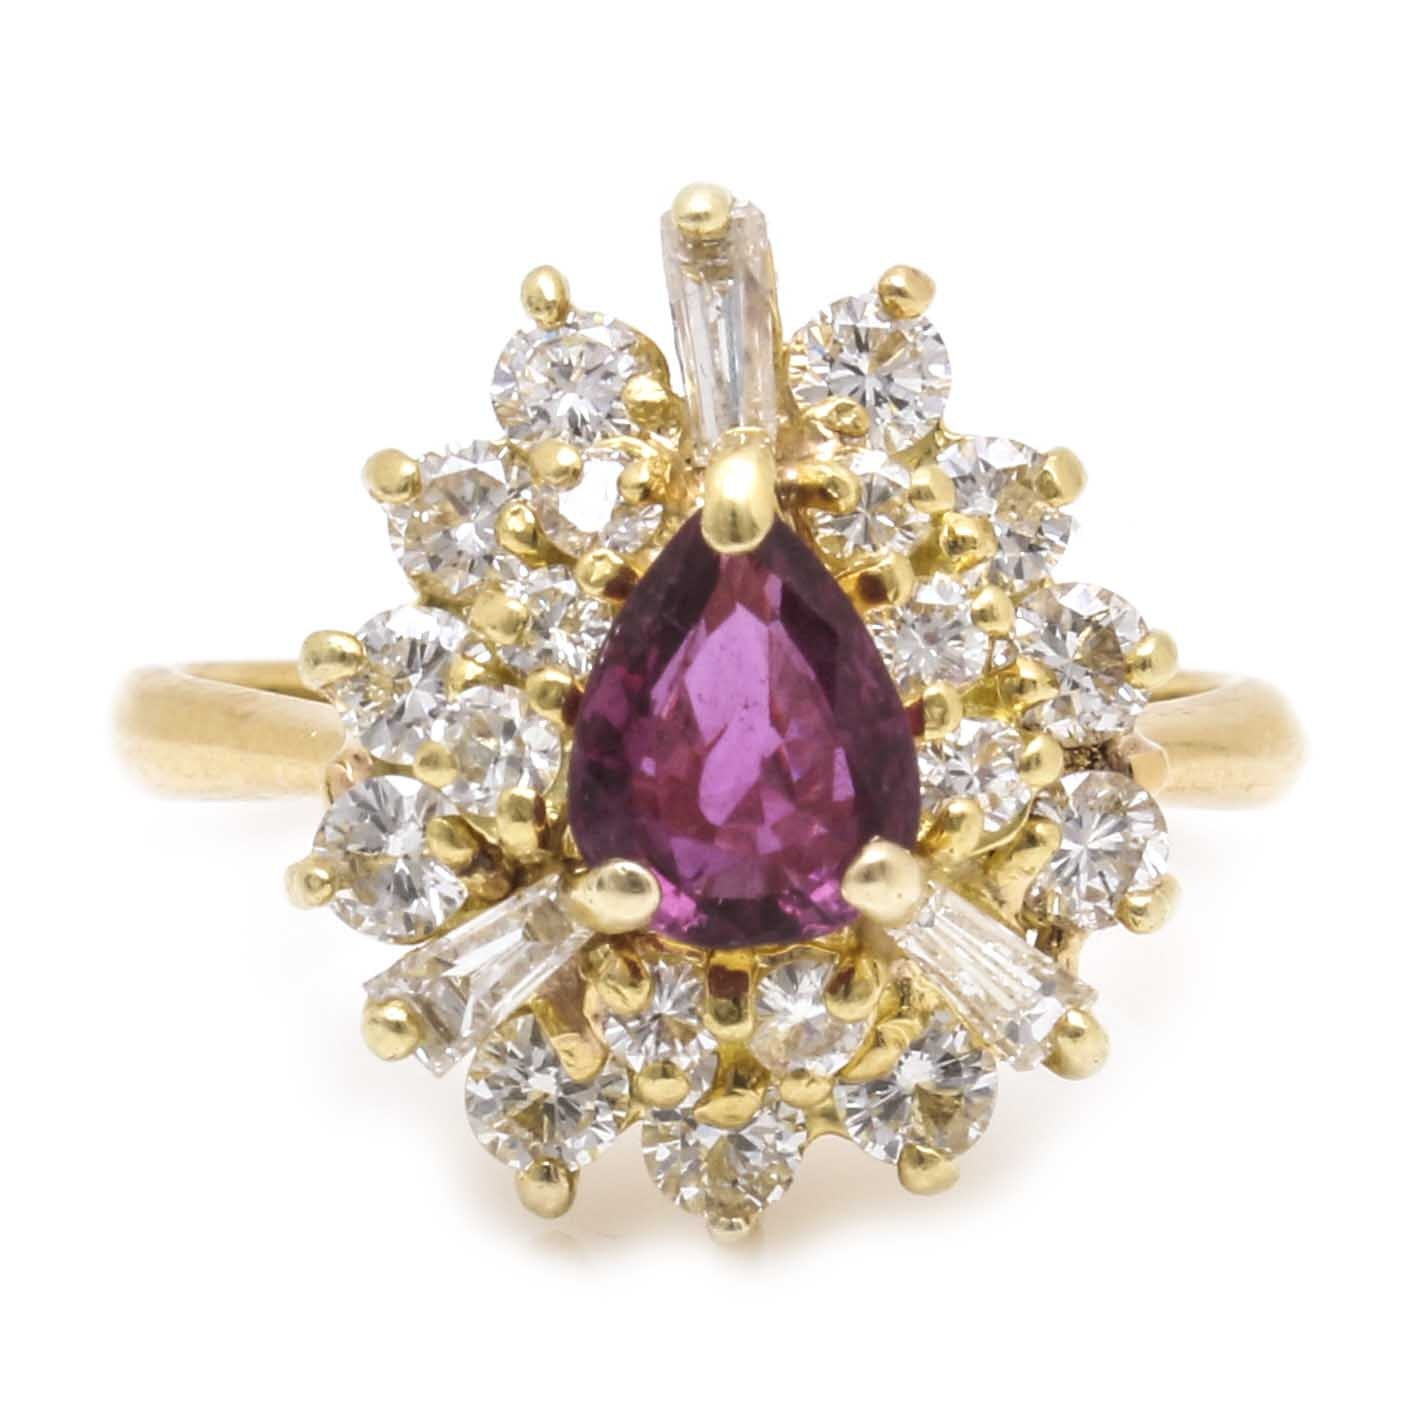 18K Yellow Gold 2.75 CTW Diamond and Ruby Ring